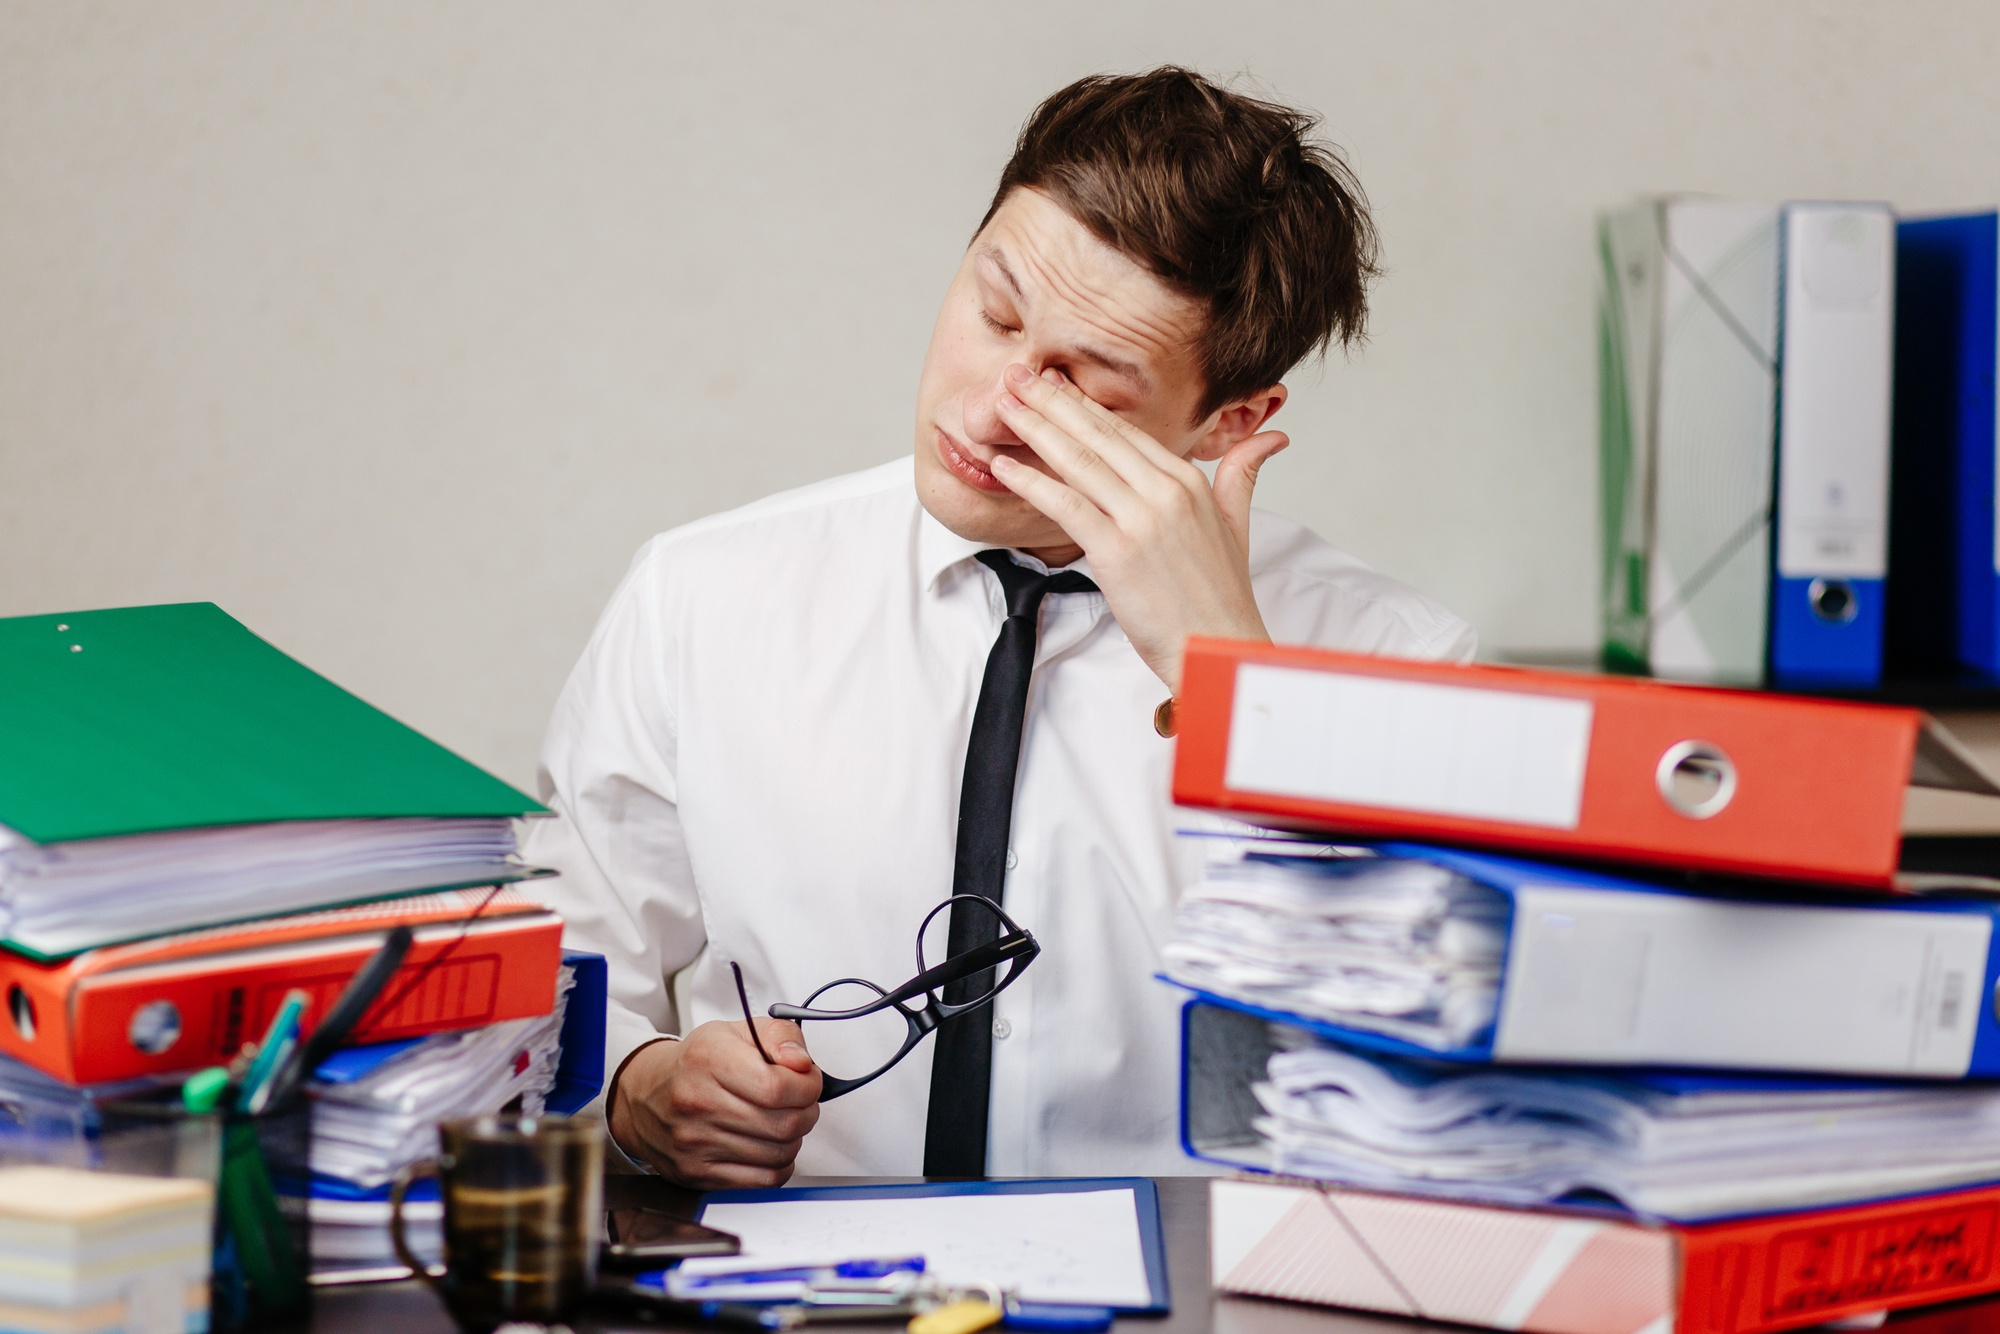 Separovic Injury Lawyers Workers Compensation Stress Claims - Office Worker.jpg